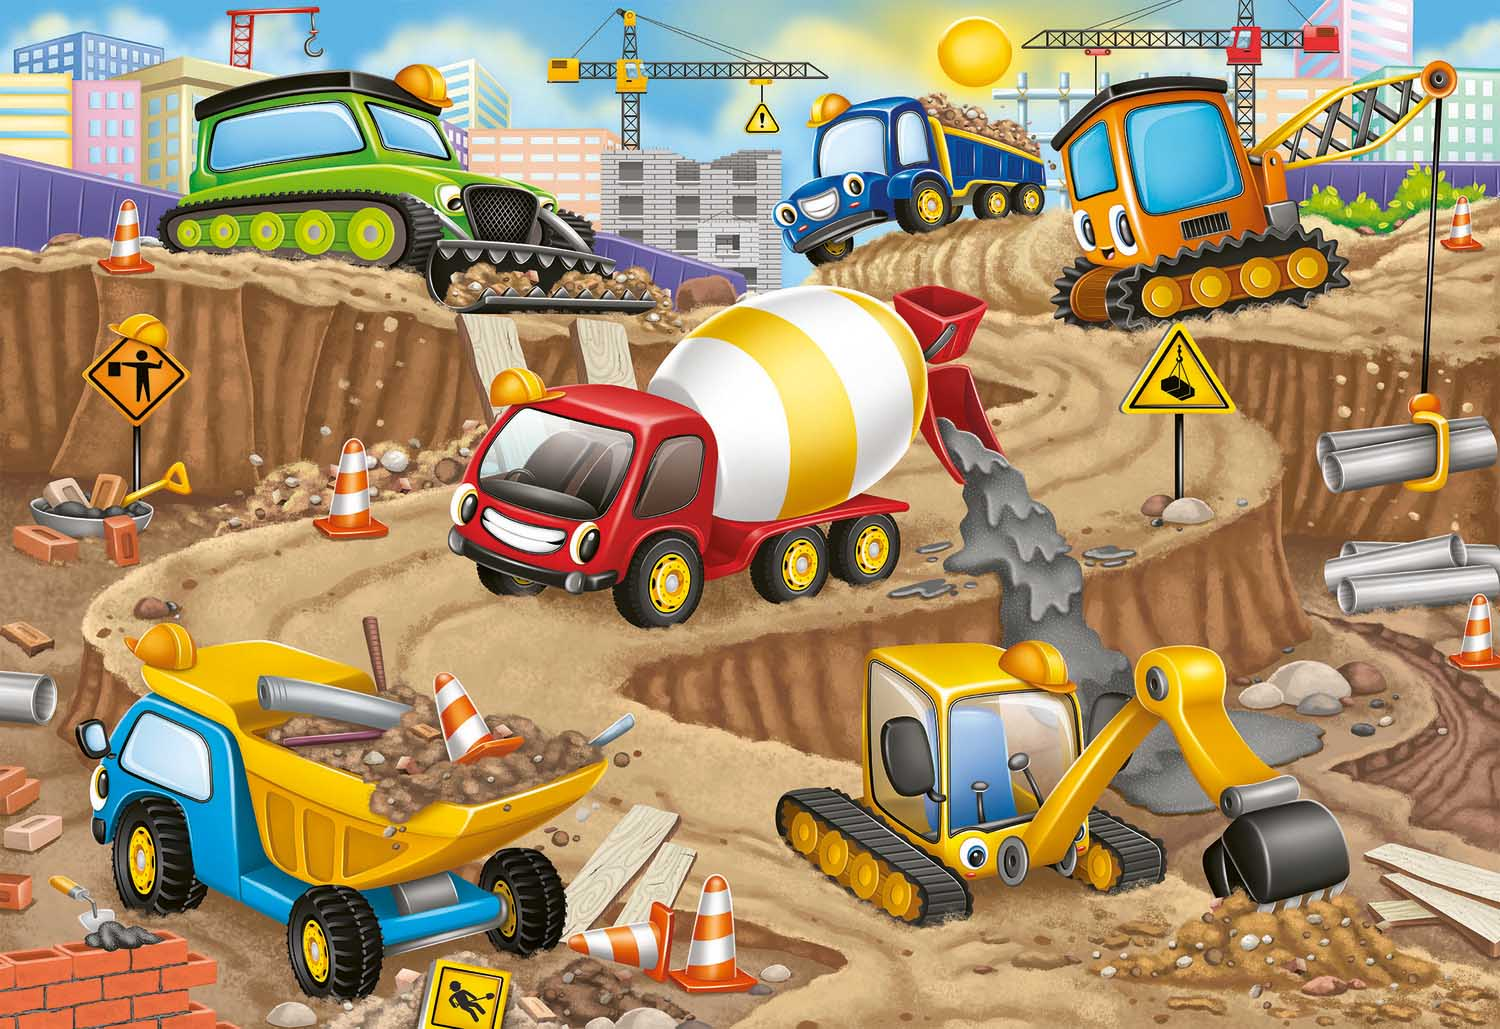 Construction Fun Vehicles Jigsaw Puzzle